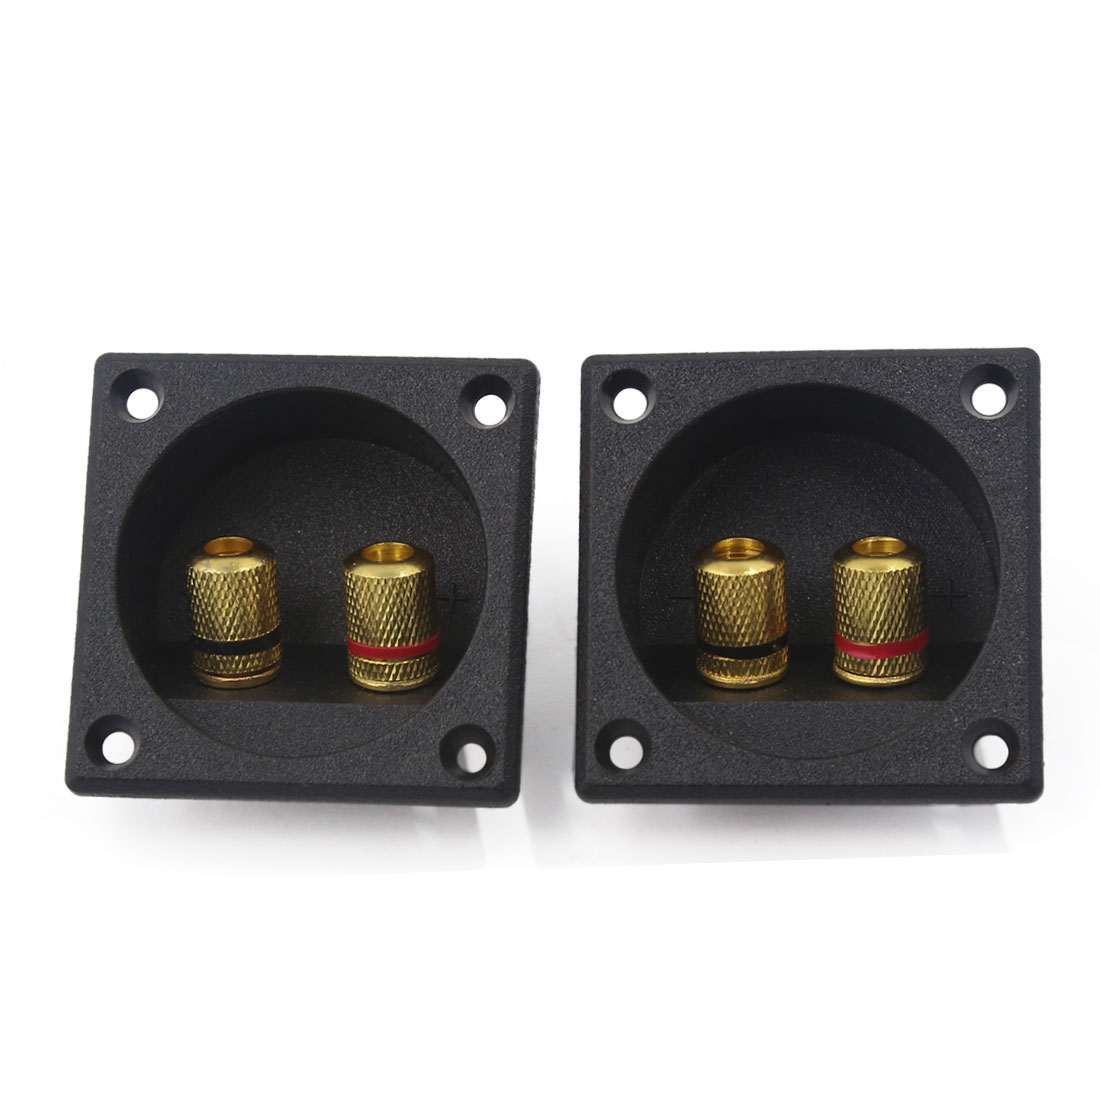 2PCS Square Audio Speaker Spring Binding Post Daul Terminal Box Connector Board